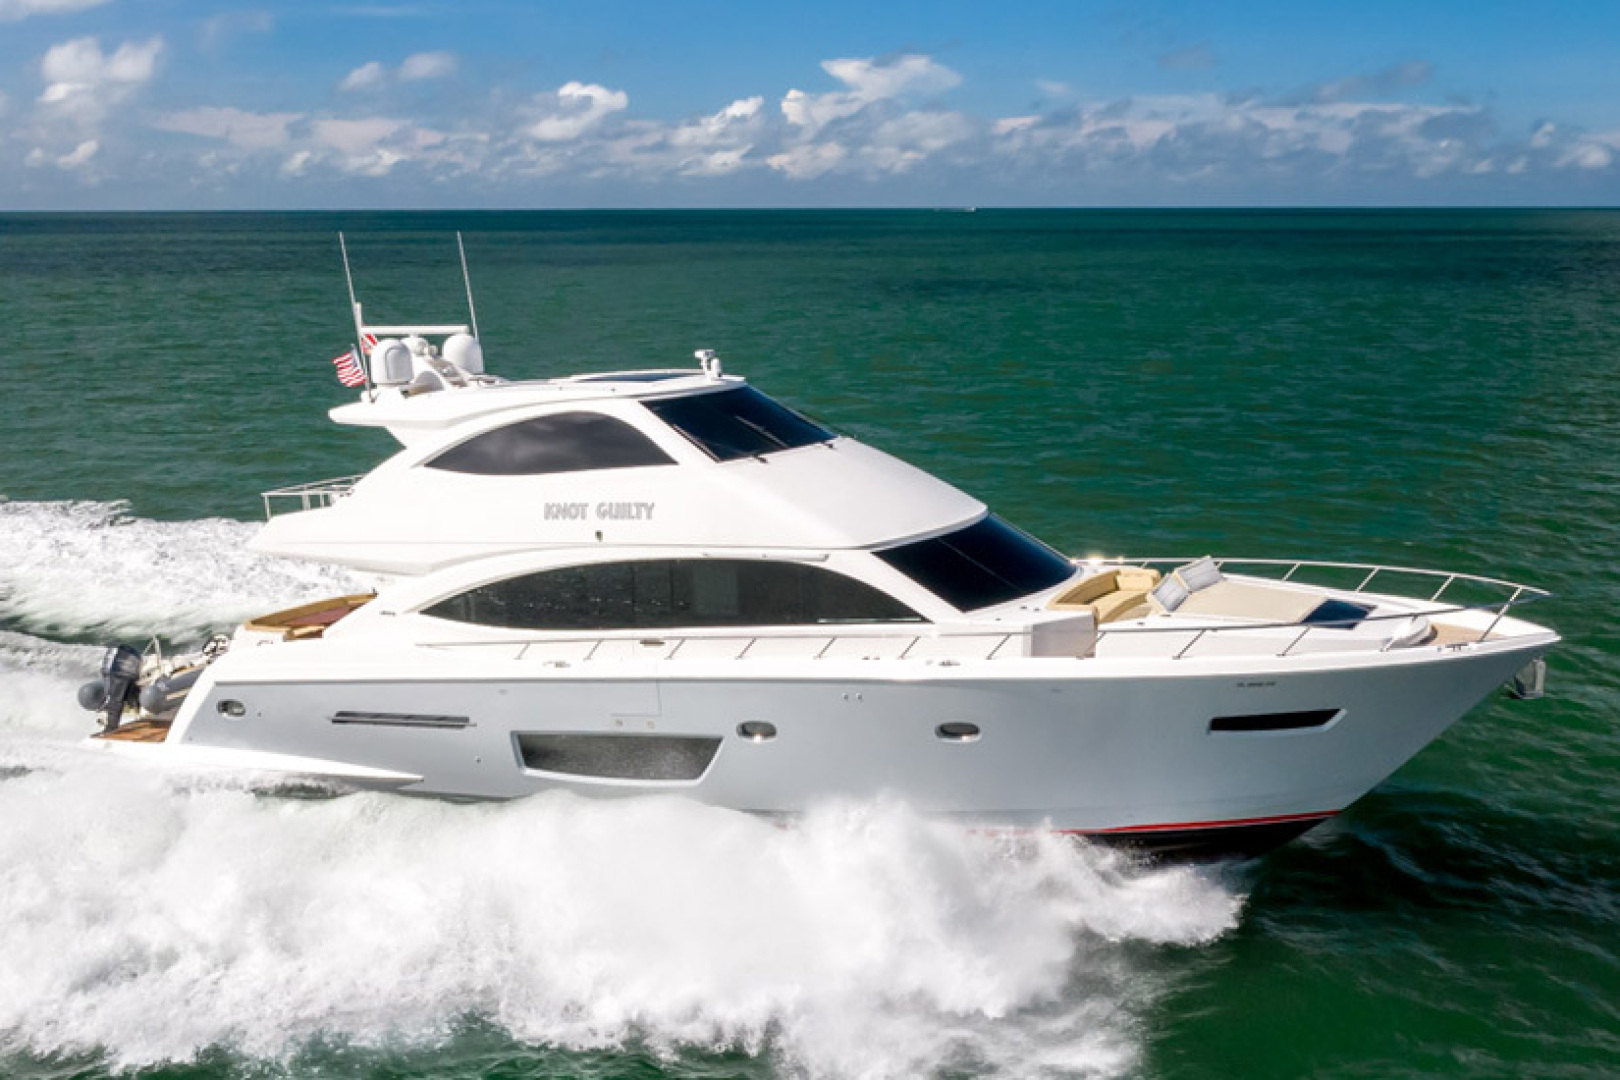 Viking-75 Motor Yacht 2015-Knot Guilty Indian Rocks Beach-Florida-United States-2015 Viking 75 MY Profile-1491113 | Thumbnail